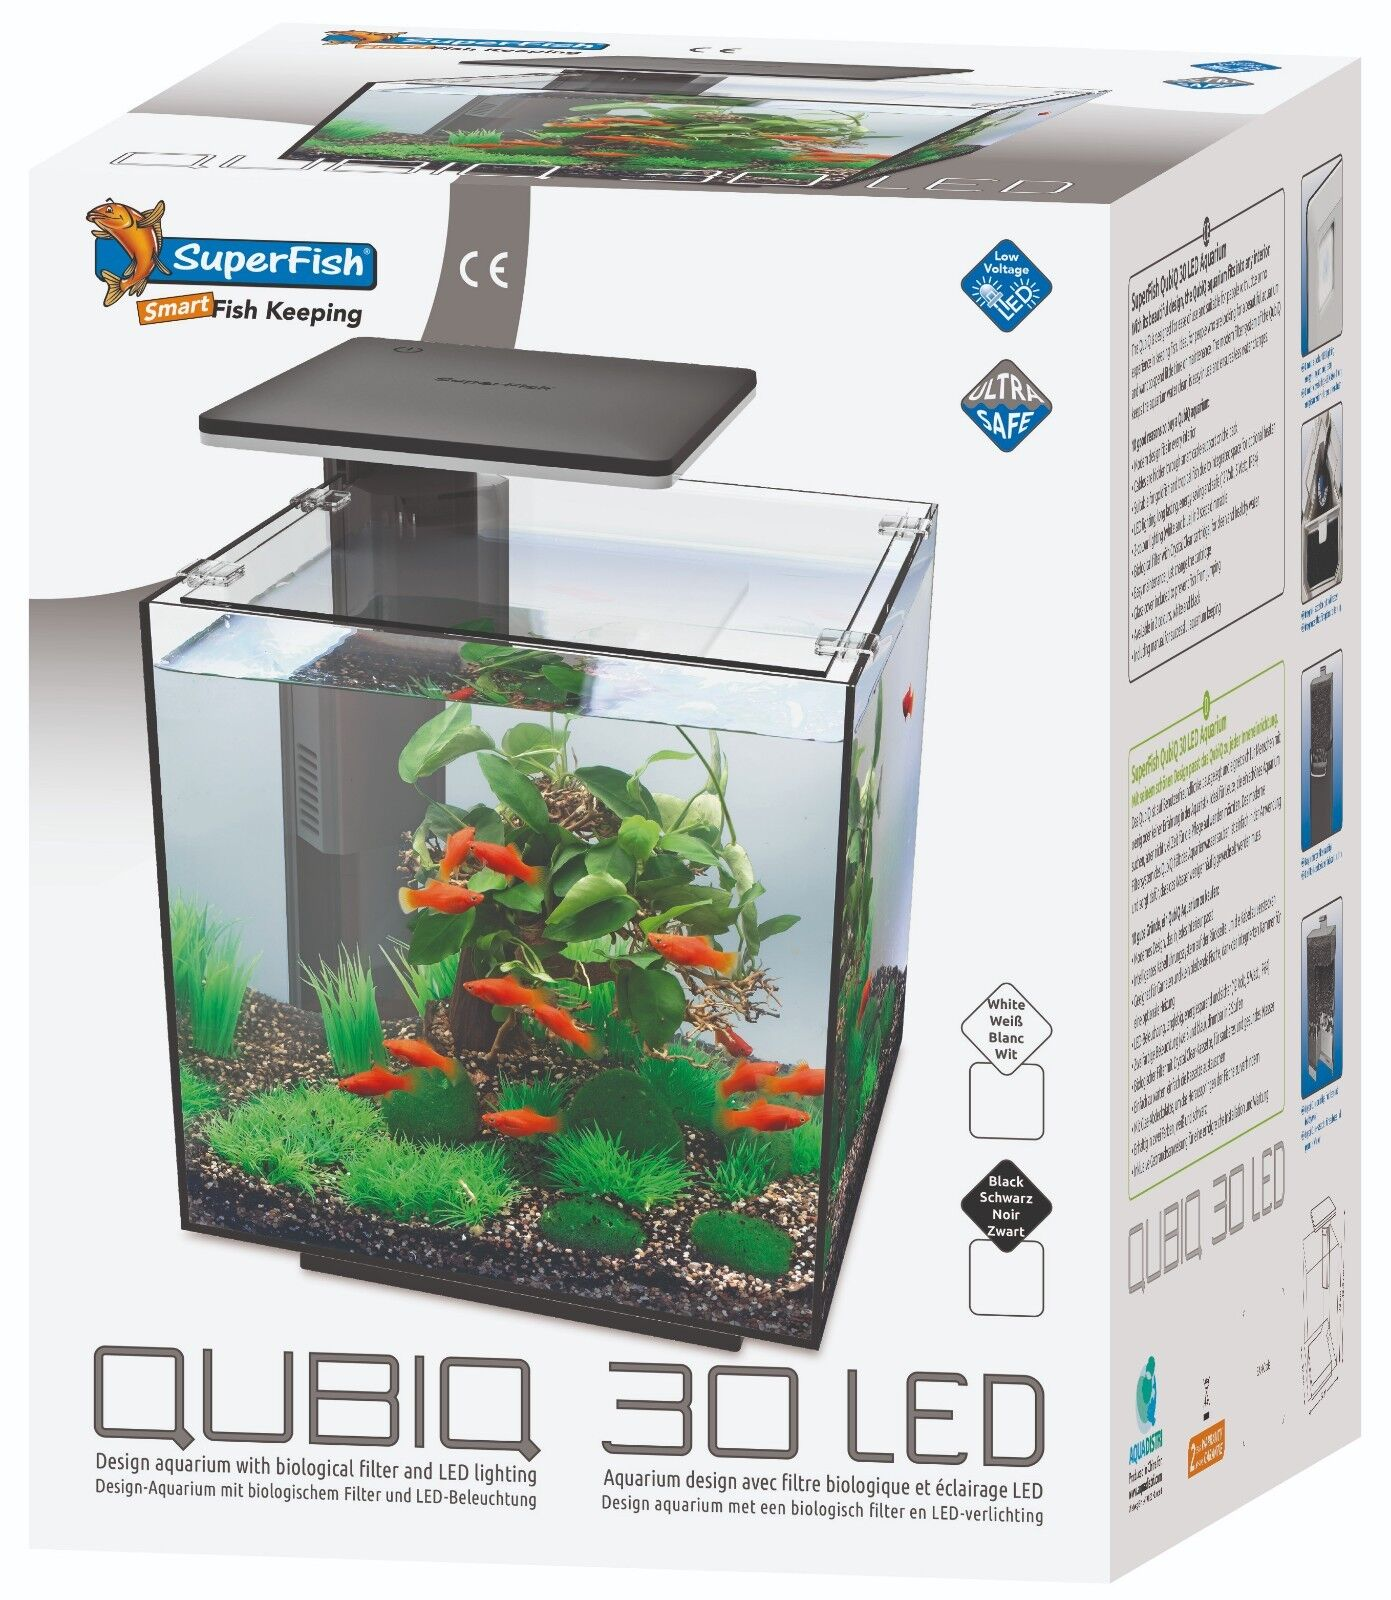 Eclairage Led Dennerle Superfish Qubiq 30 Led White 30l Nano Cube Aquarium Fish Tank Filter Led Light